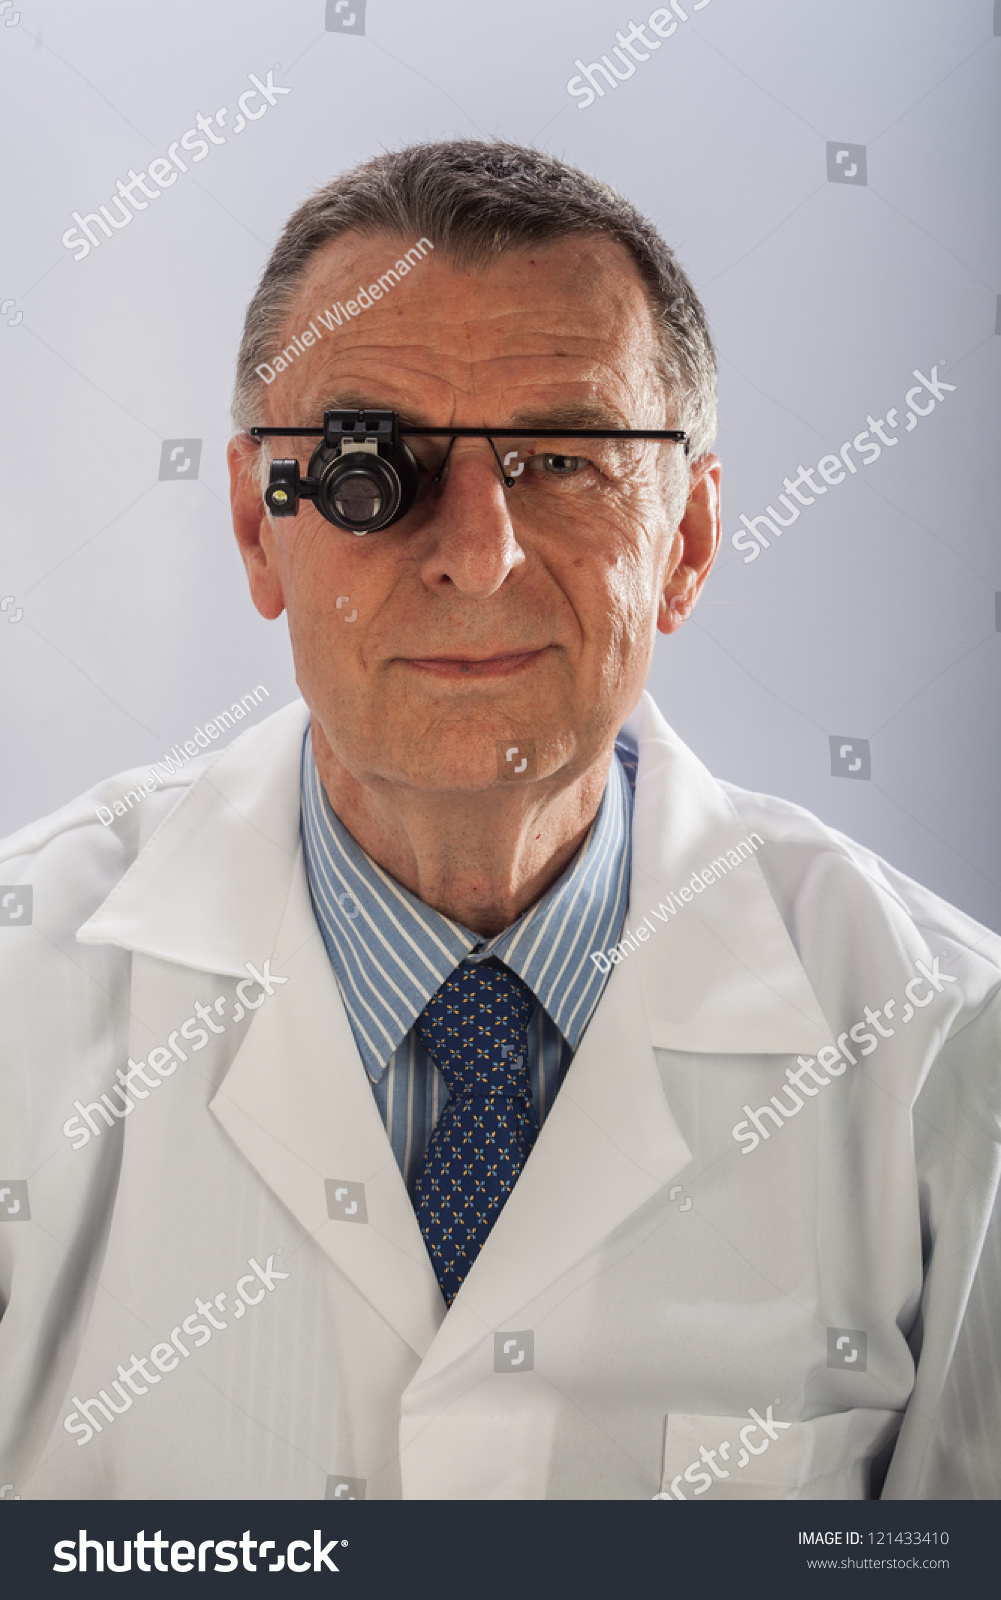 Older Male Wearing White Lab Coat Stock Photo Edit Now 121433410 Mobile Phone Repair In Electronic Working Place Royalty Free An A And Repairing Equipments Like Technician